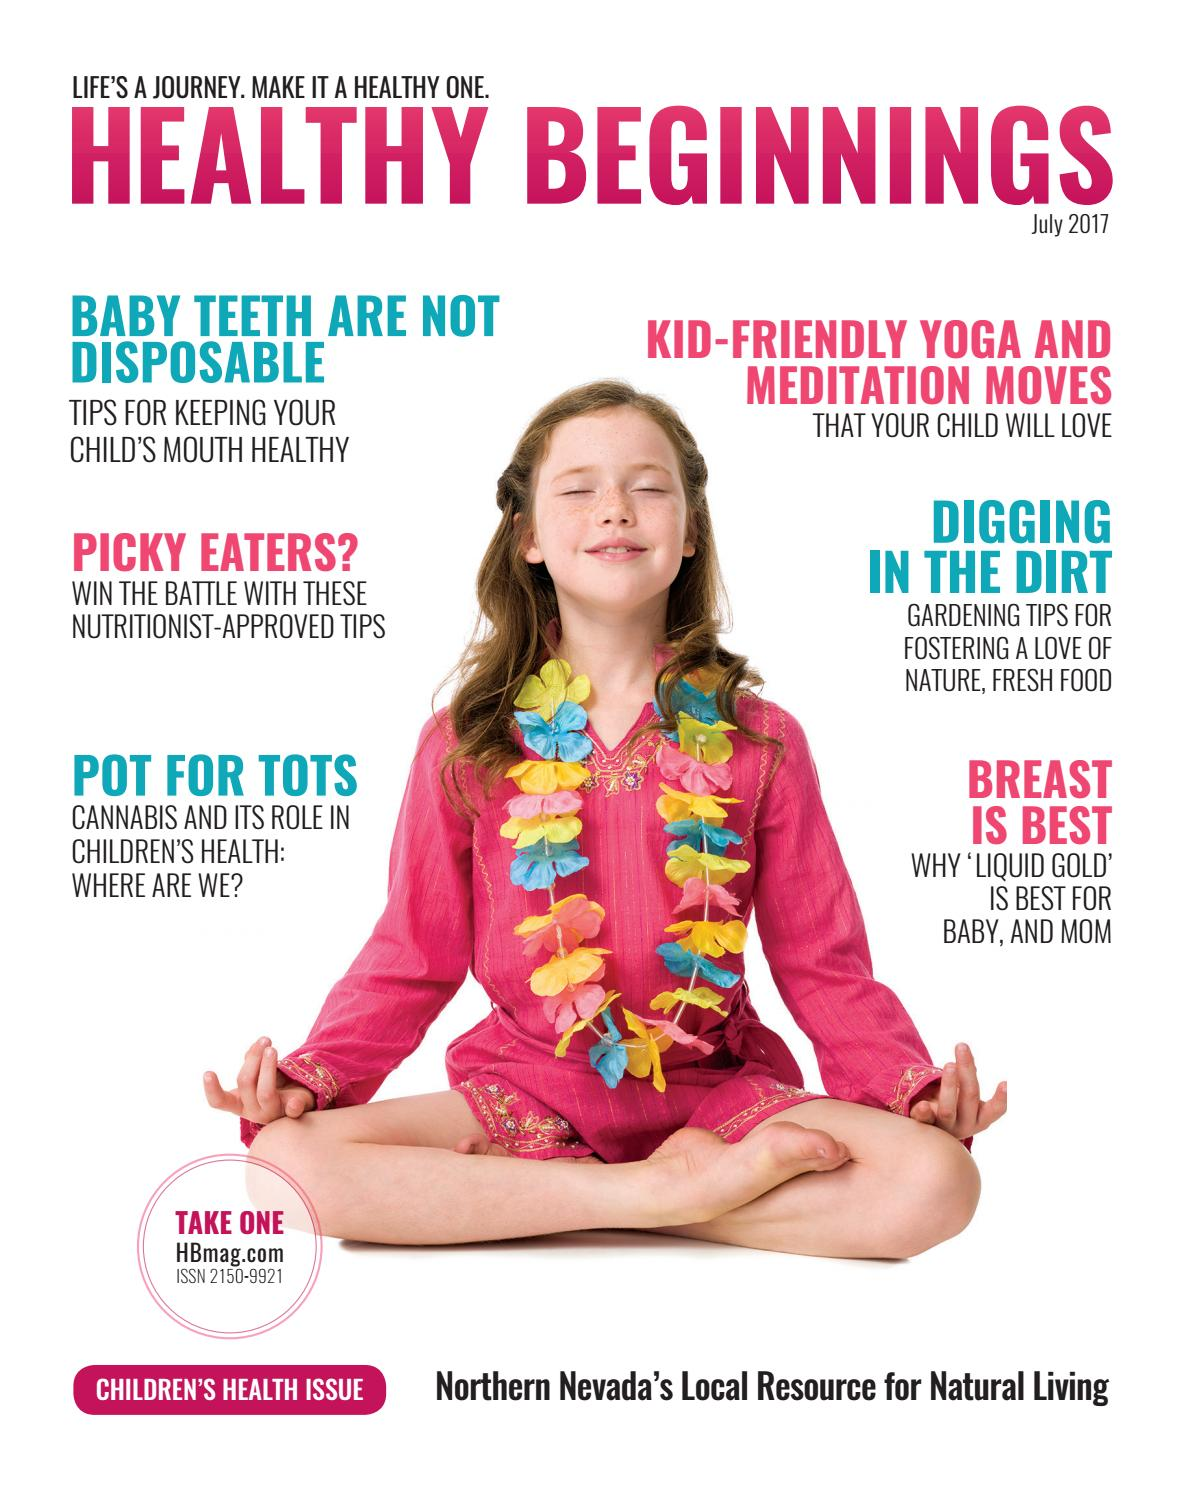 Tempering in a kindergarten, or In a healthy child a healthy spirit and body